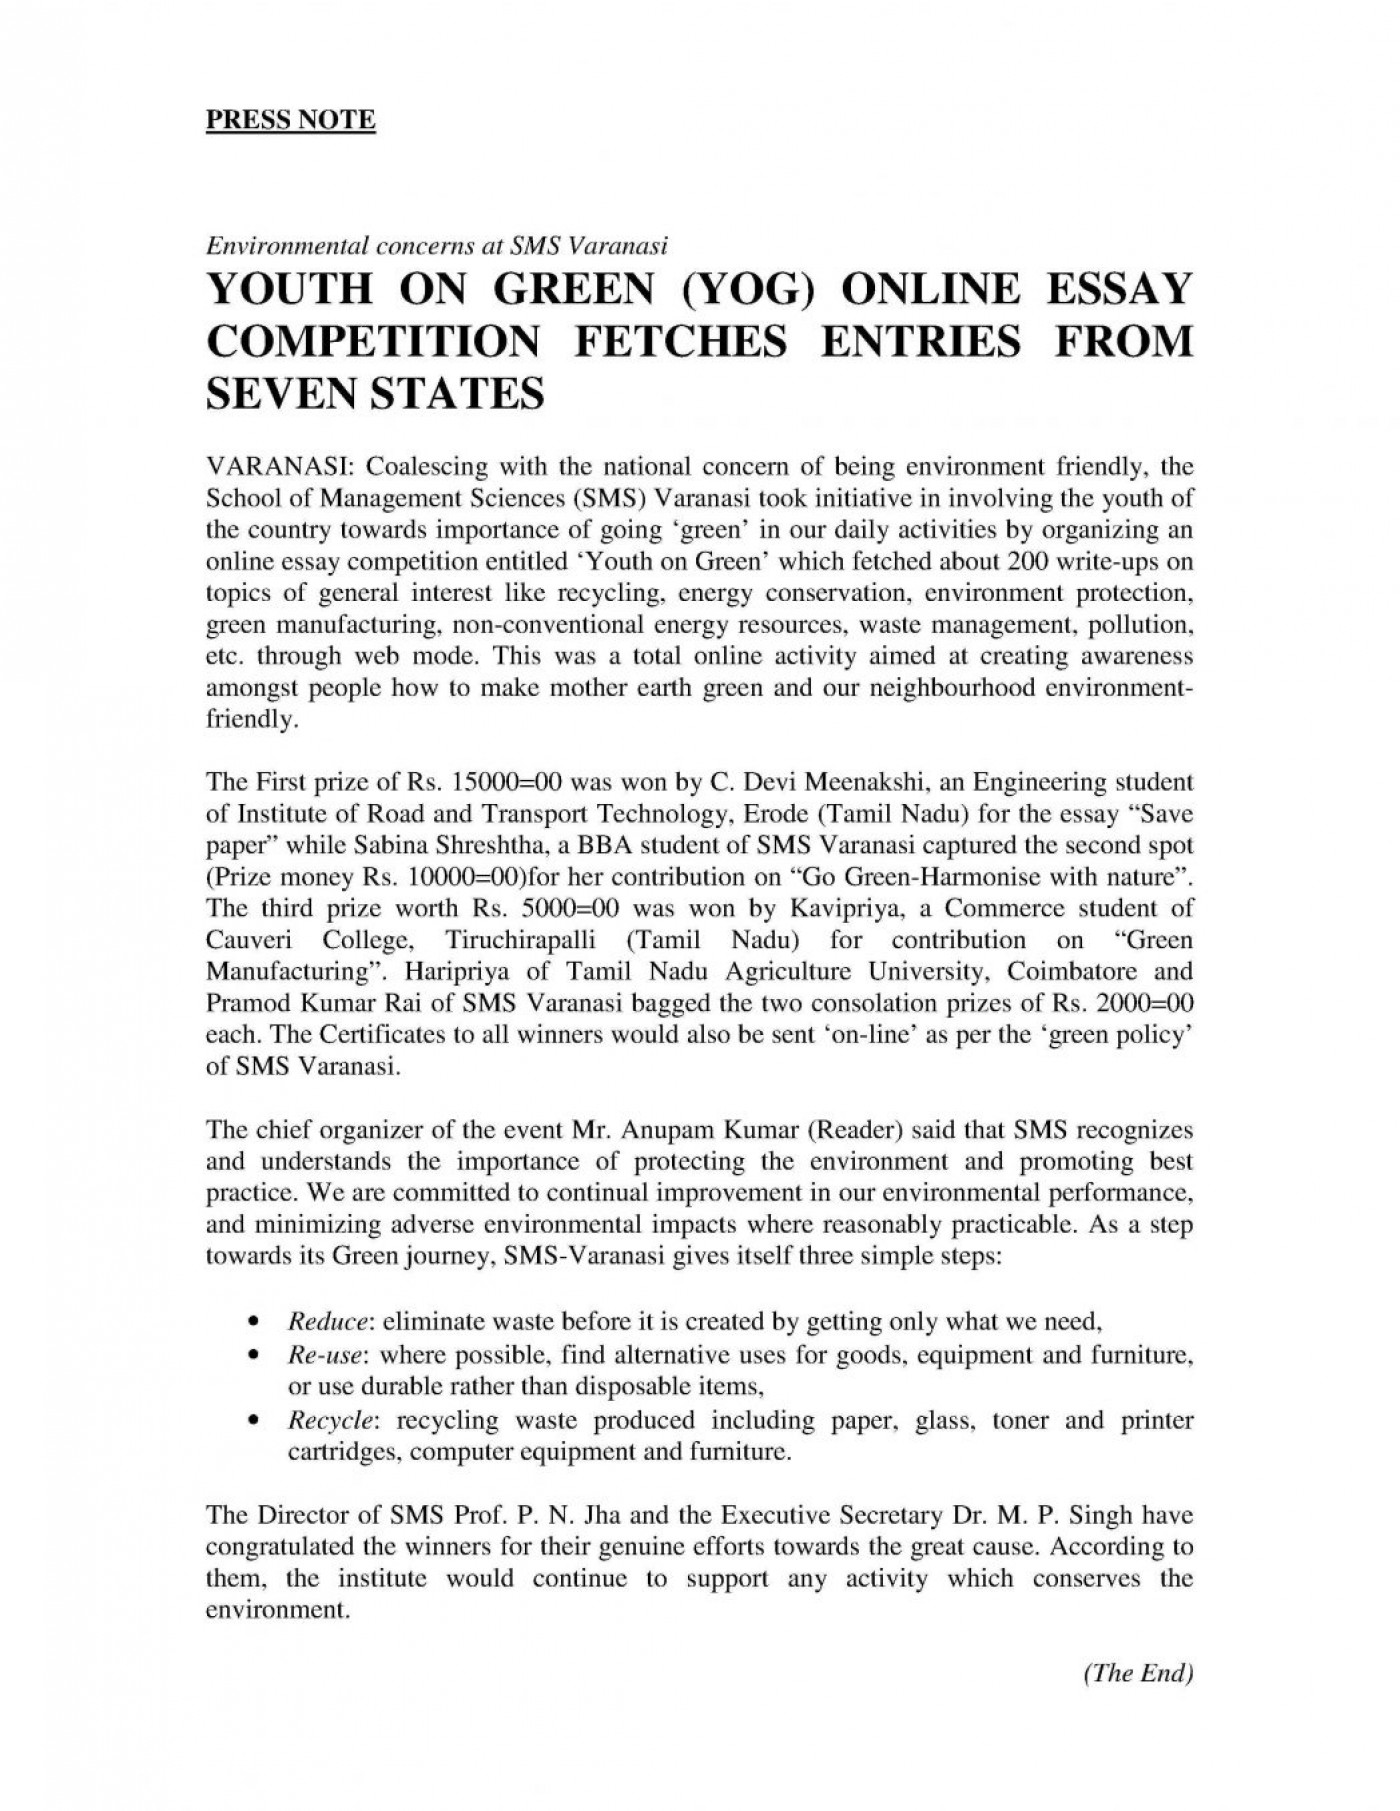 020 Best Essays For College Essay On Good Habits How Tot Application Online Yog Press Re About Yourself Examples Your Background Failure Prompt Off Hook 1048x1356 Example Amazing To Start An A Definition Begin With Dictionary 1400